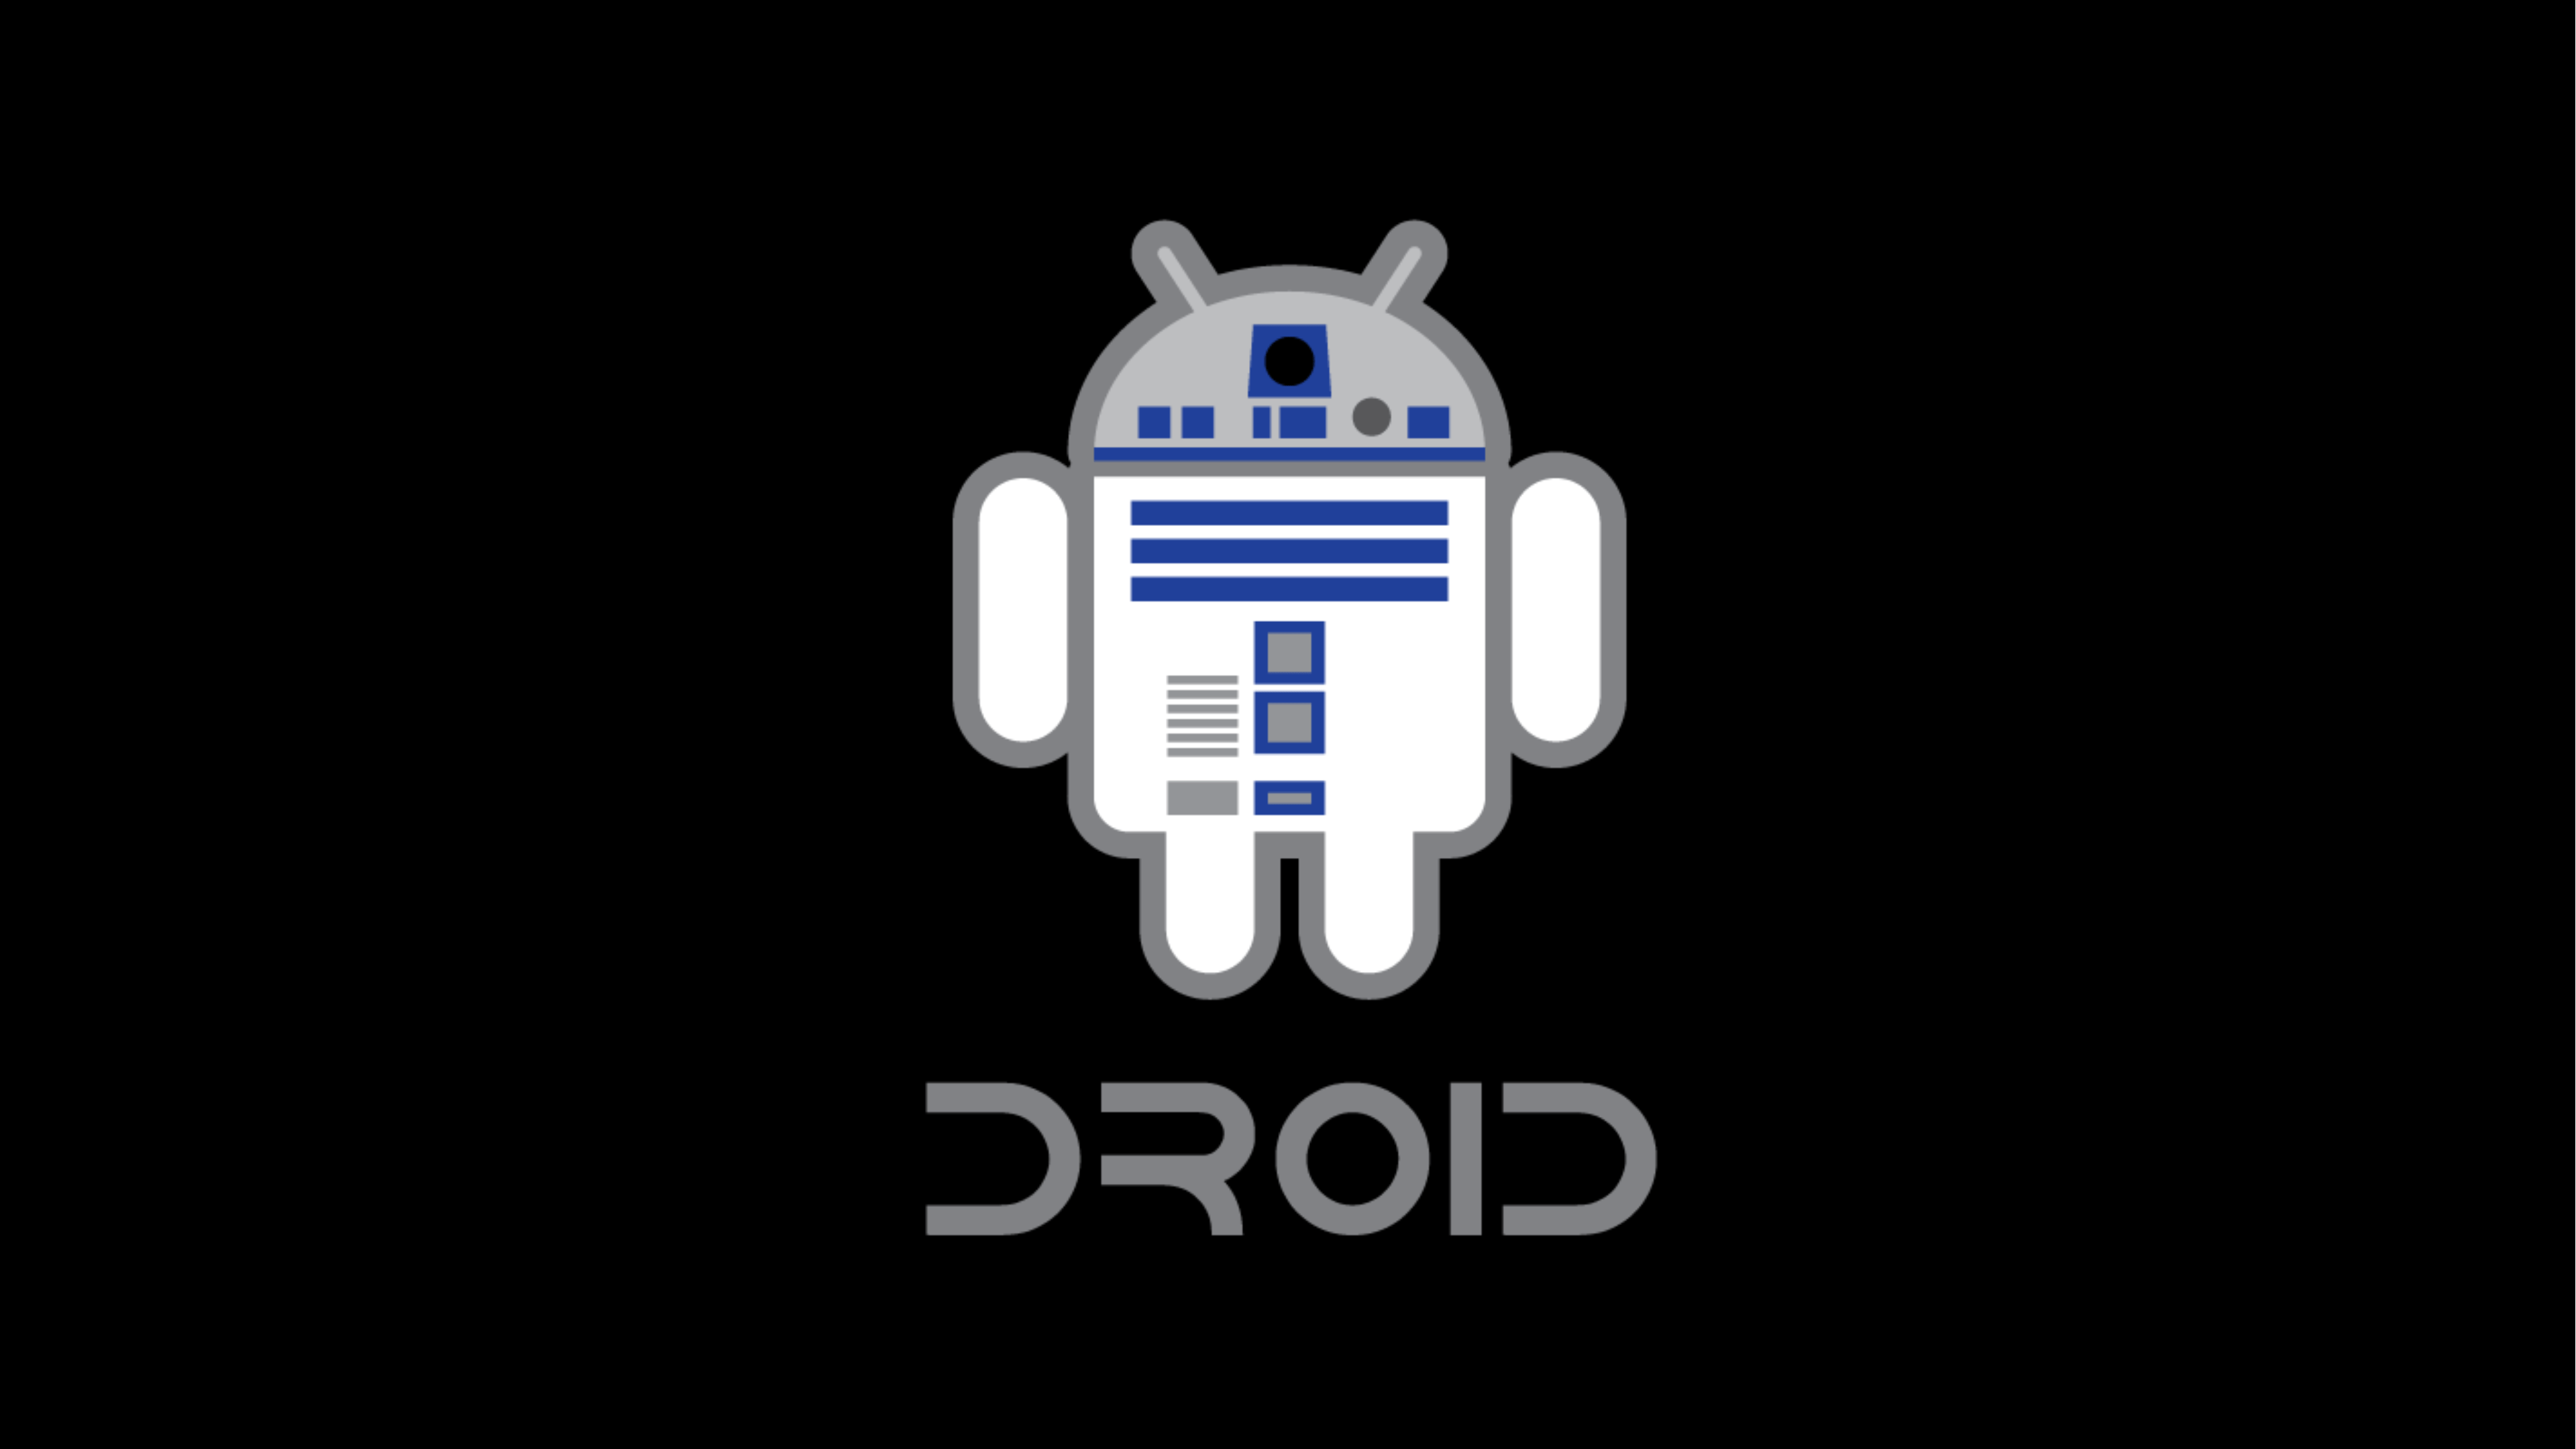 Star Wars Live Wallpaper Android 66 989653 Png Images Pngio